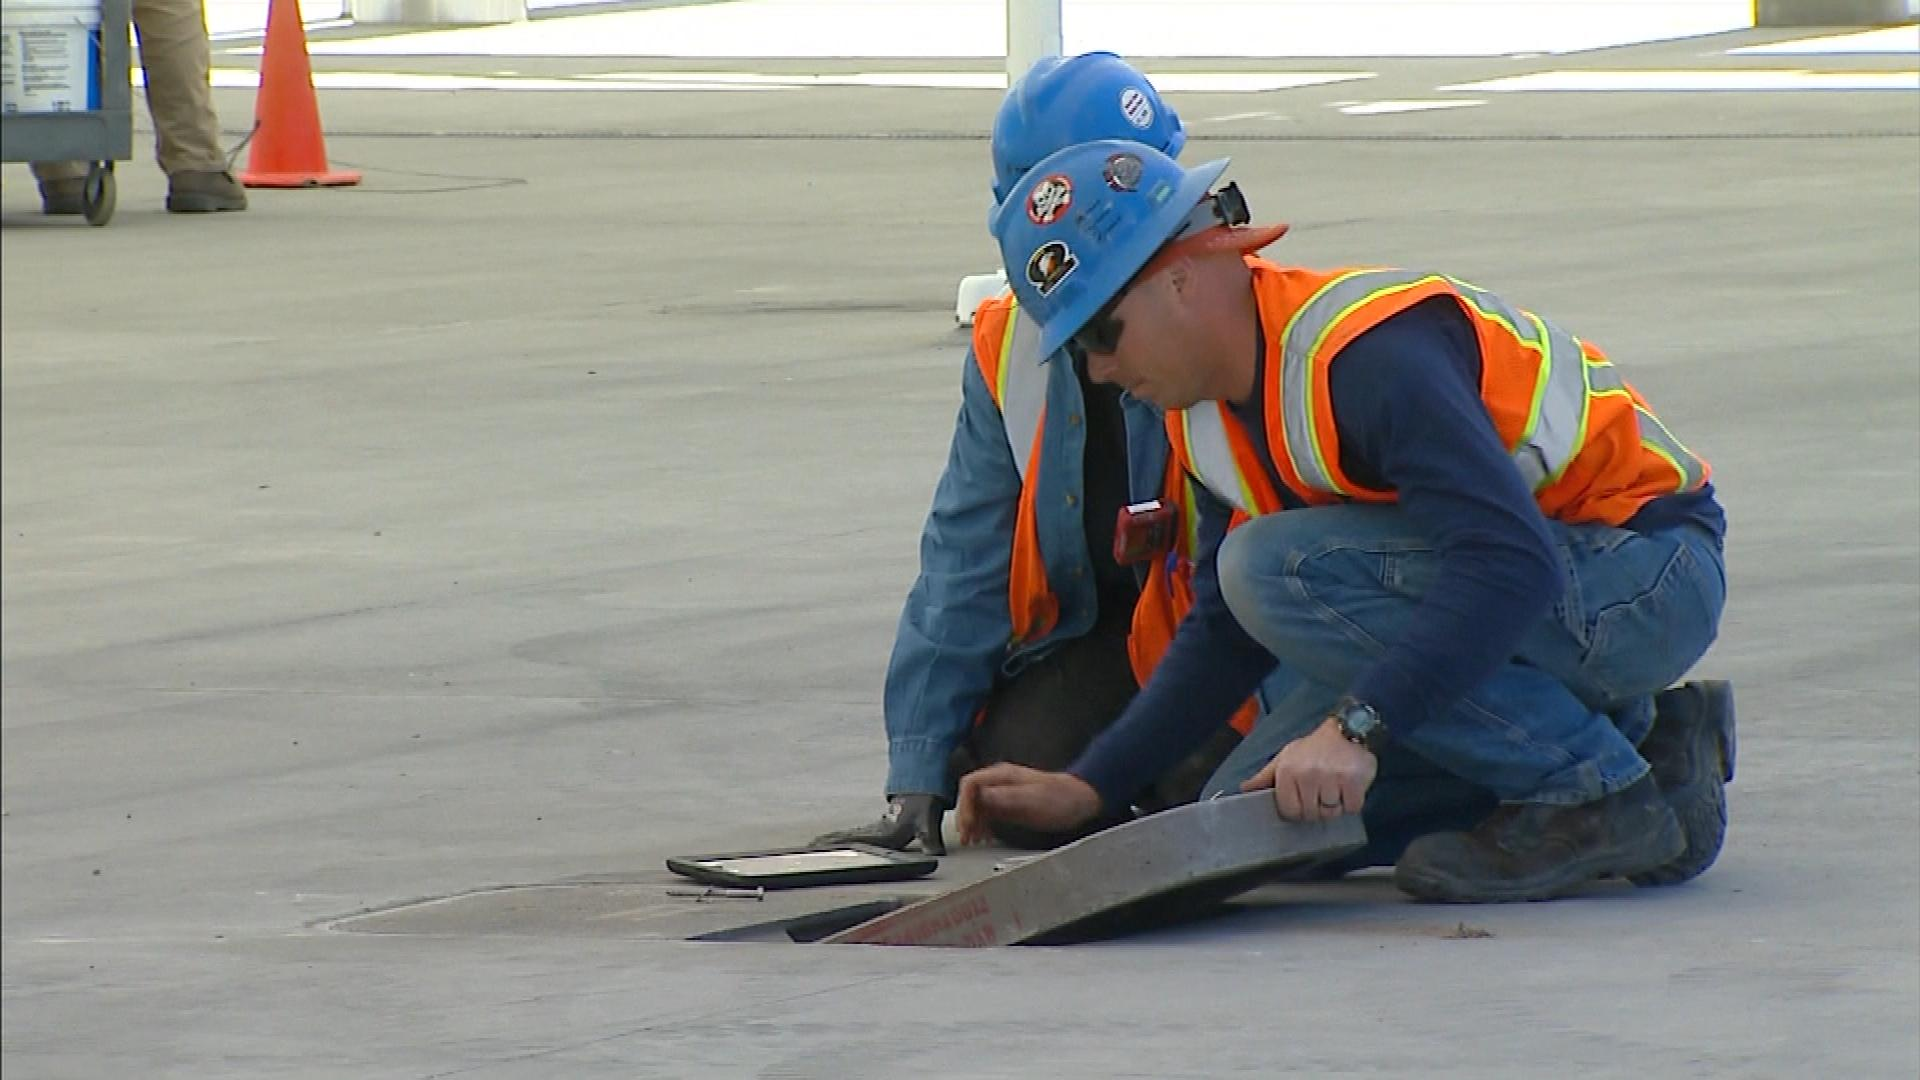 Construction workers at Denver's Union Station (credit: CBS)